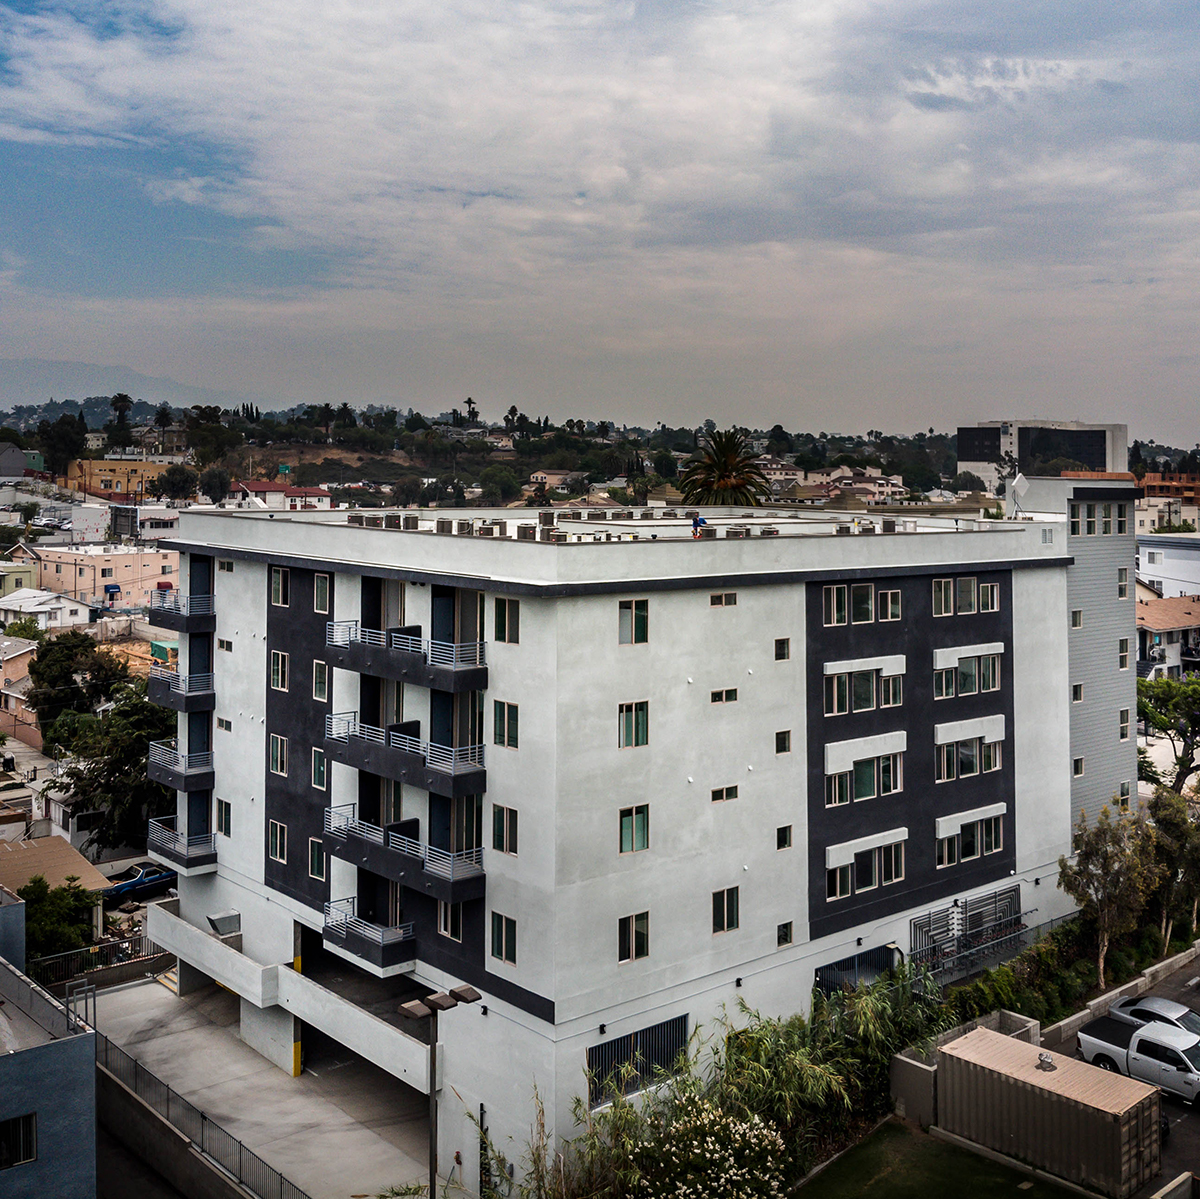 Echo Park Apartments: Affordable Apartments For Rent In Echo